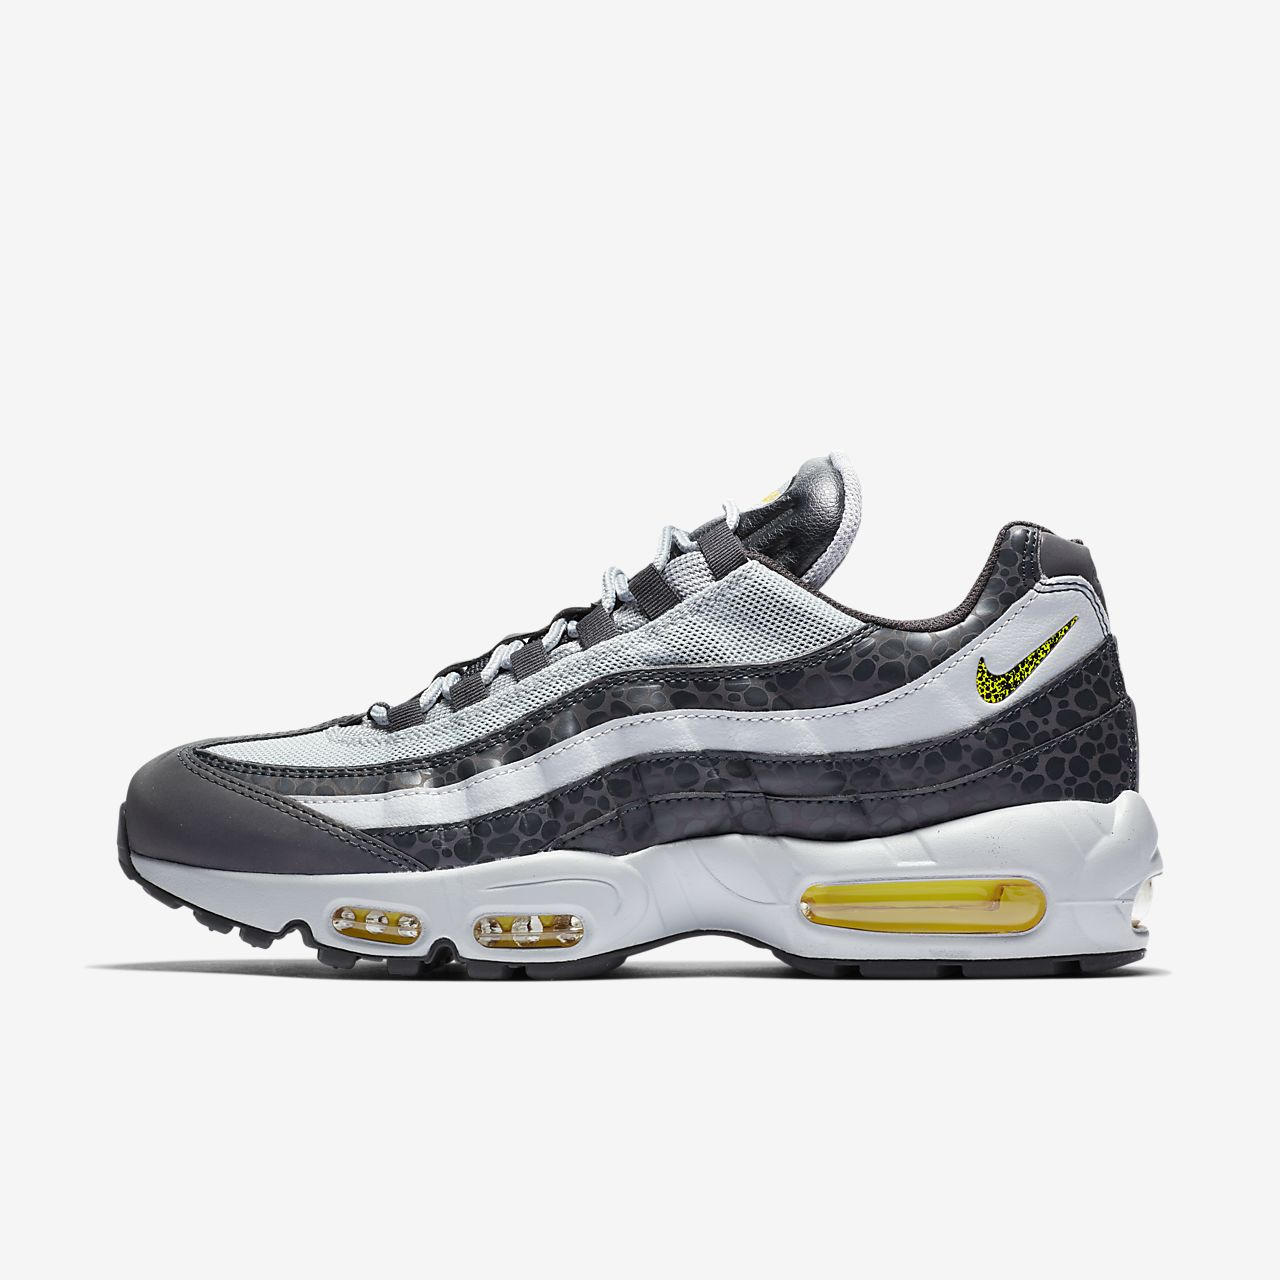 hot sale online a1e2a ee304 ... Nike Air Max 95 SE Men s Shoe